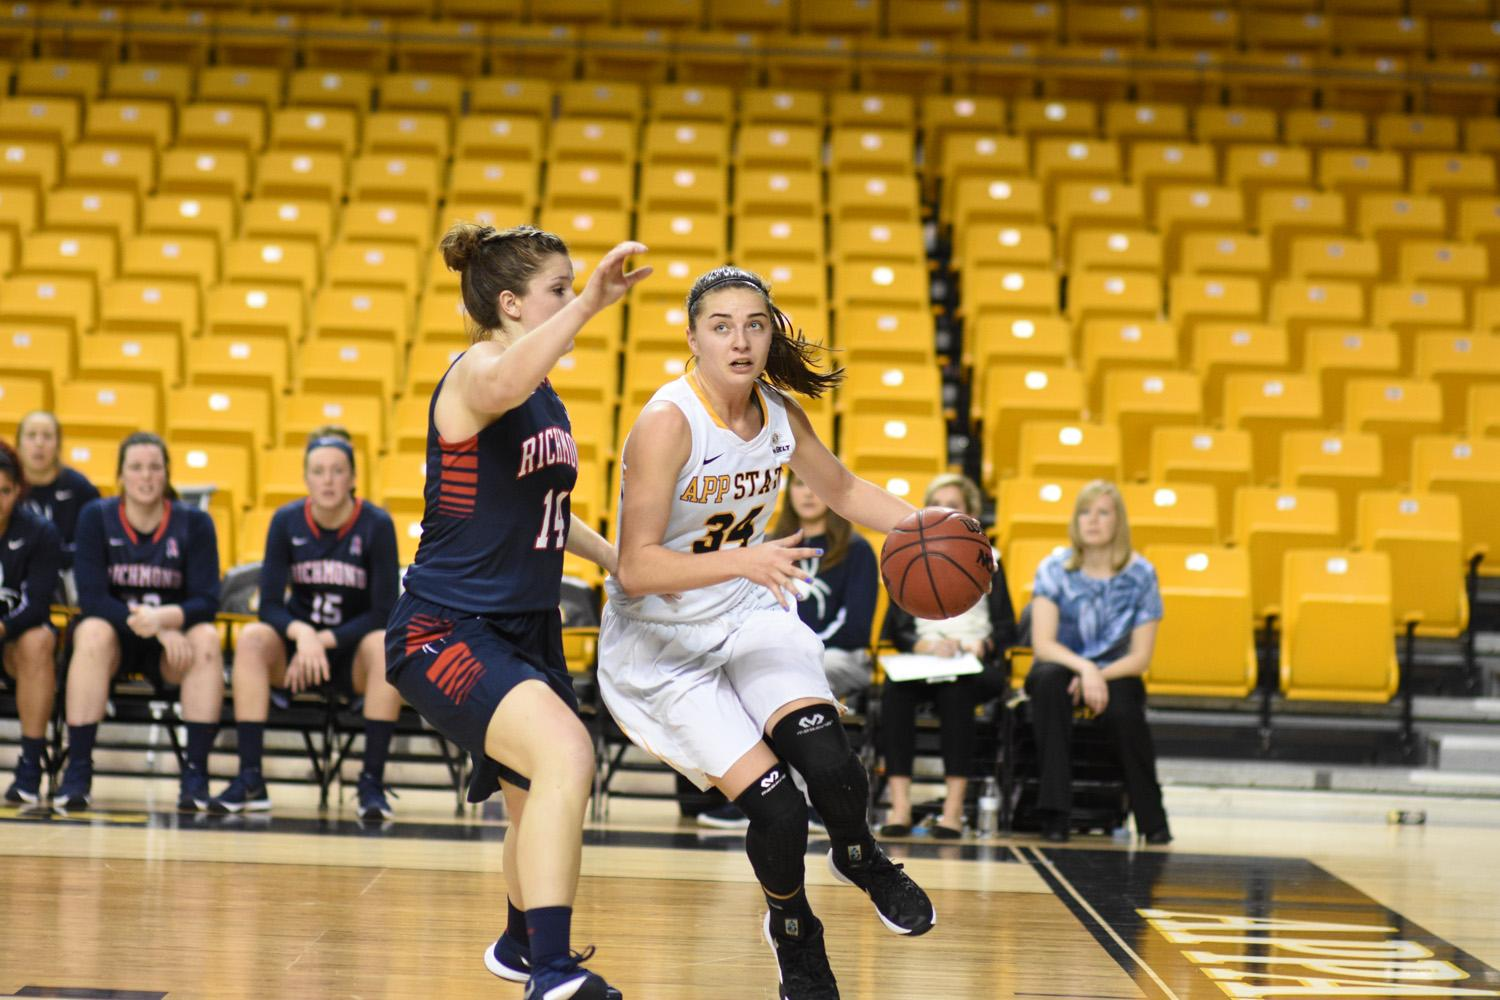 Madi Story drives to the basket against a Richmond defender. Story's offensive performance has made her a valuable asset to the mountaineers this season.